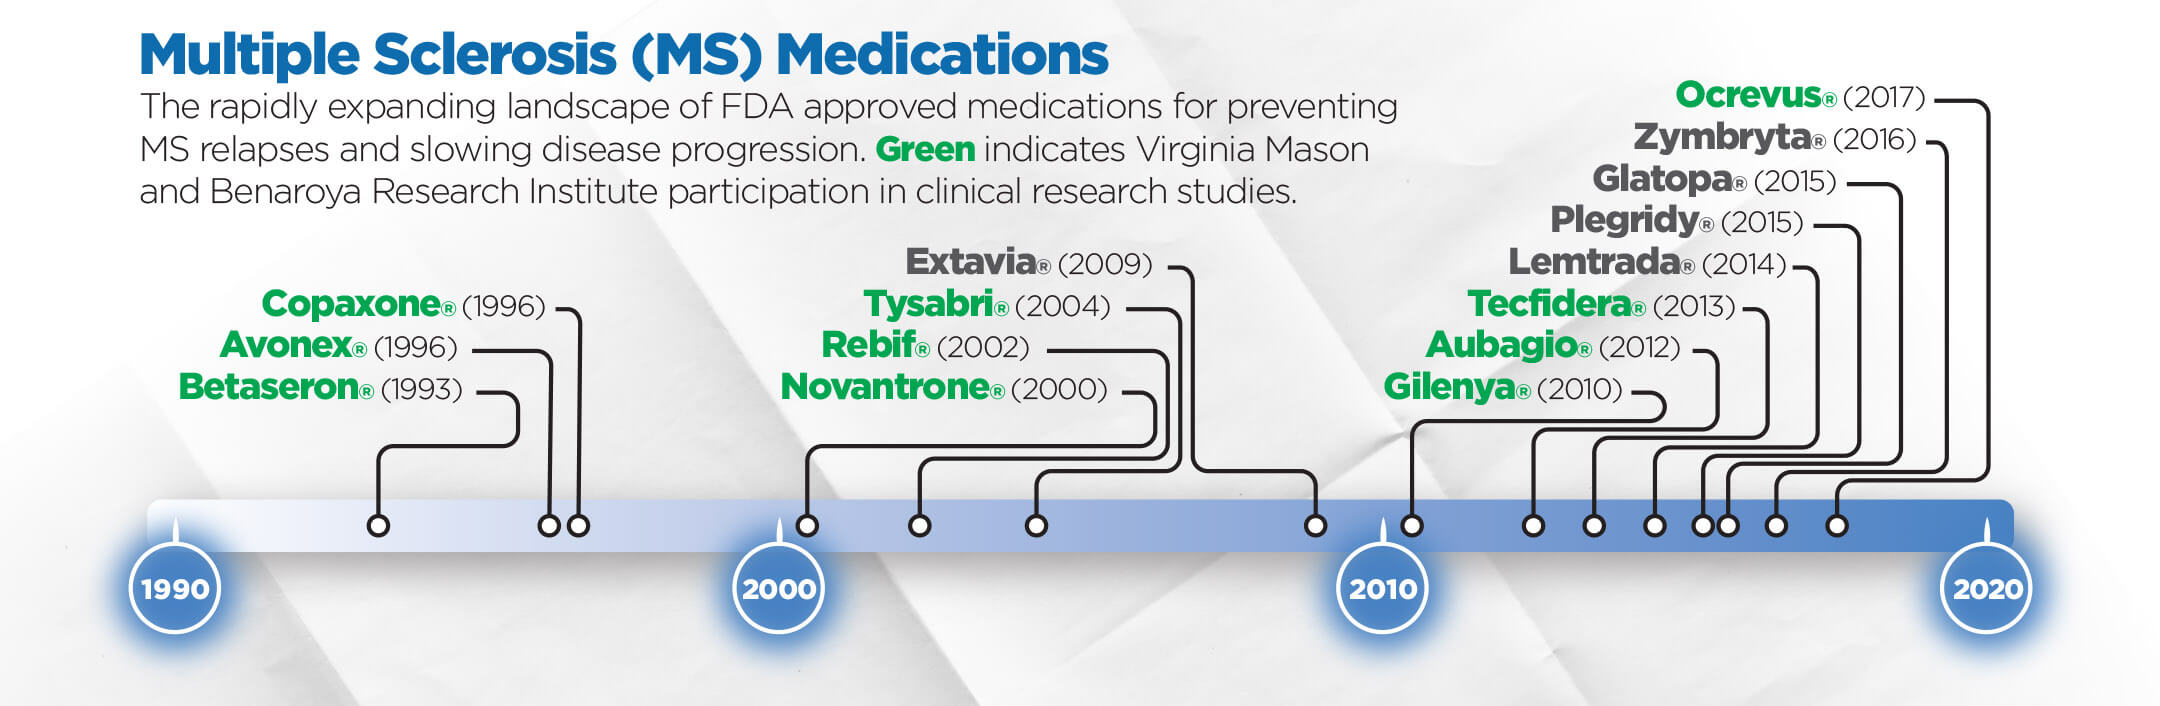 This graph shows the rapidly expanding landscape of FDA-approved medications for preventing MS relapses and slowing disease progression. Green indicates Virginia Mason and Benaroya Research Institute participation in clinical research studies.